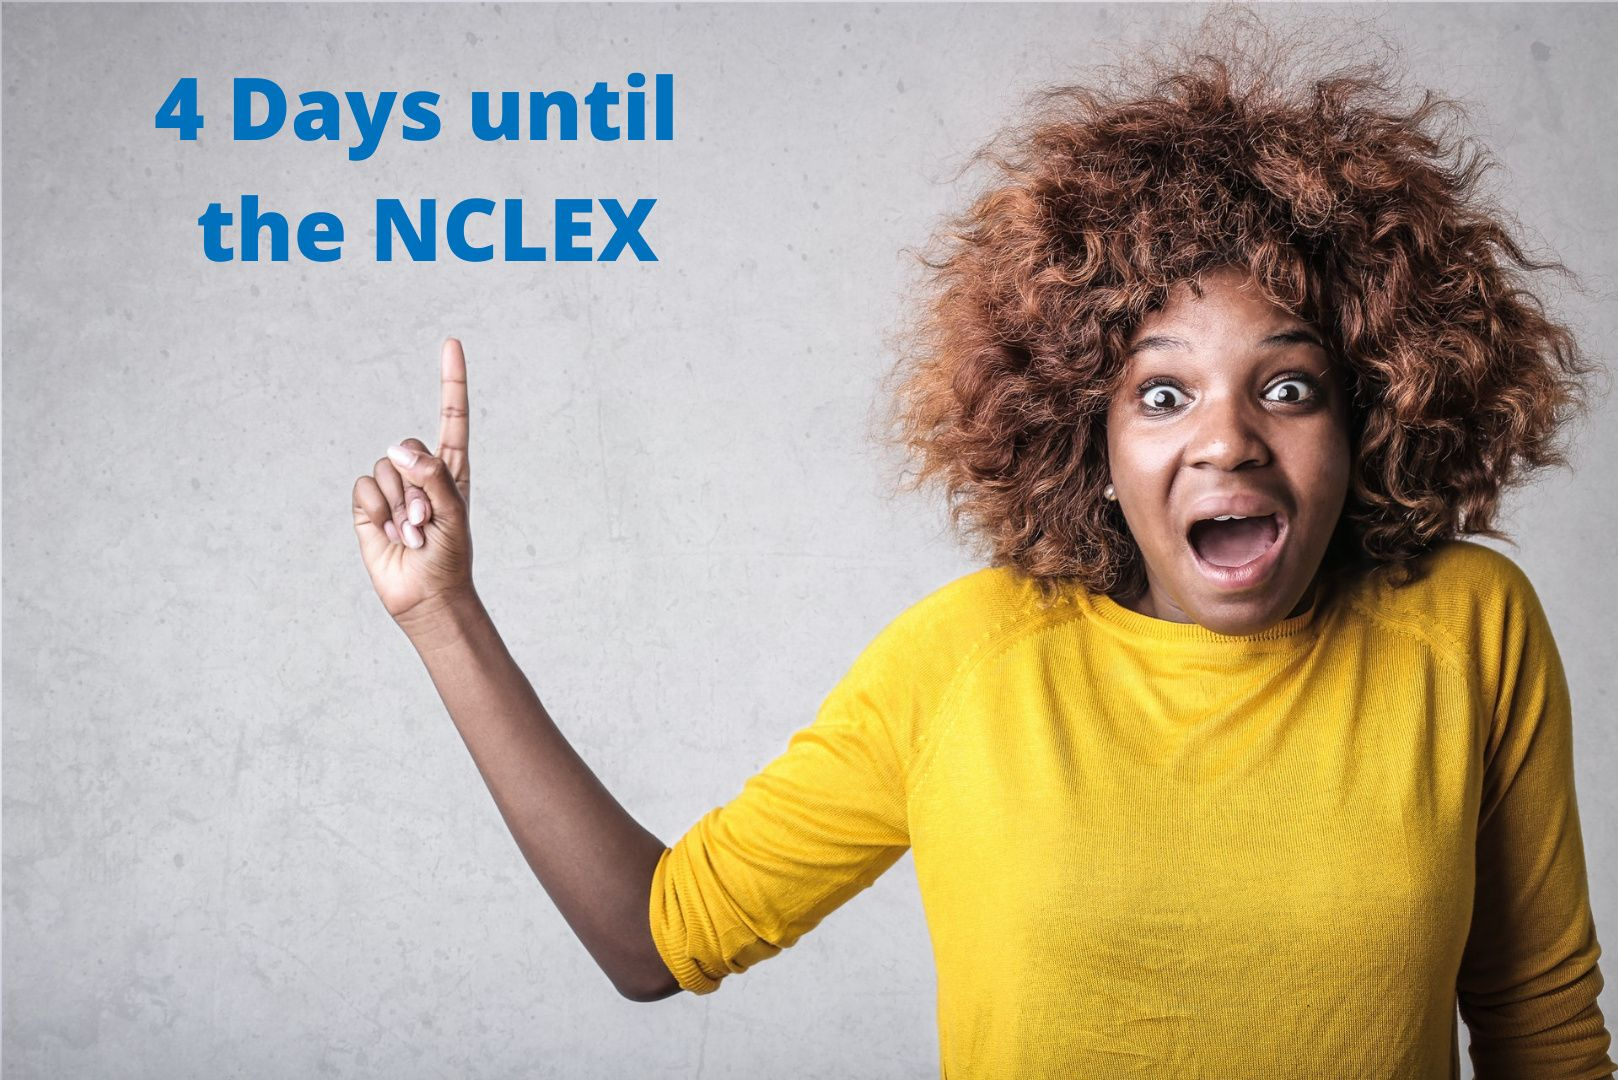 Girl counting down until NCLEX exam